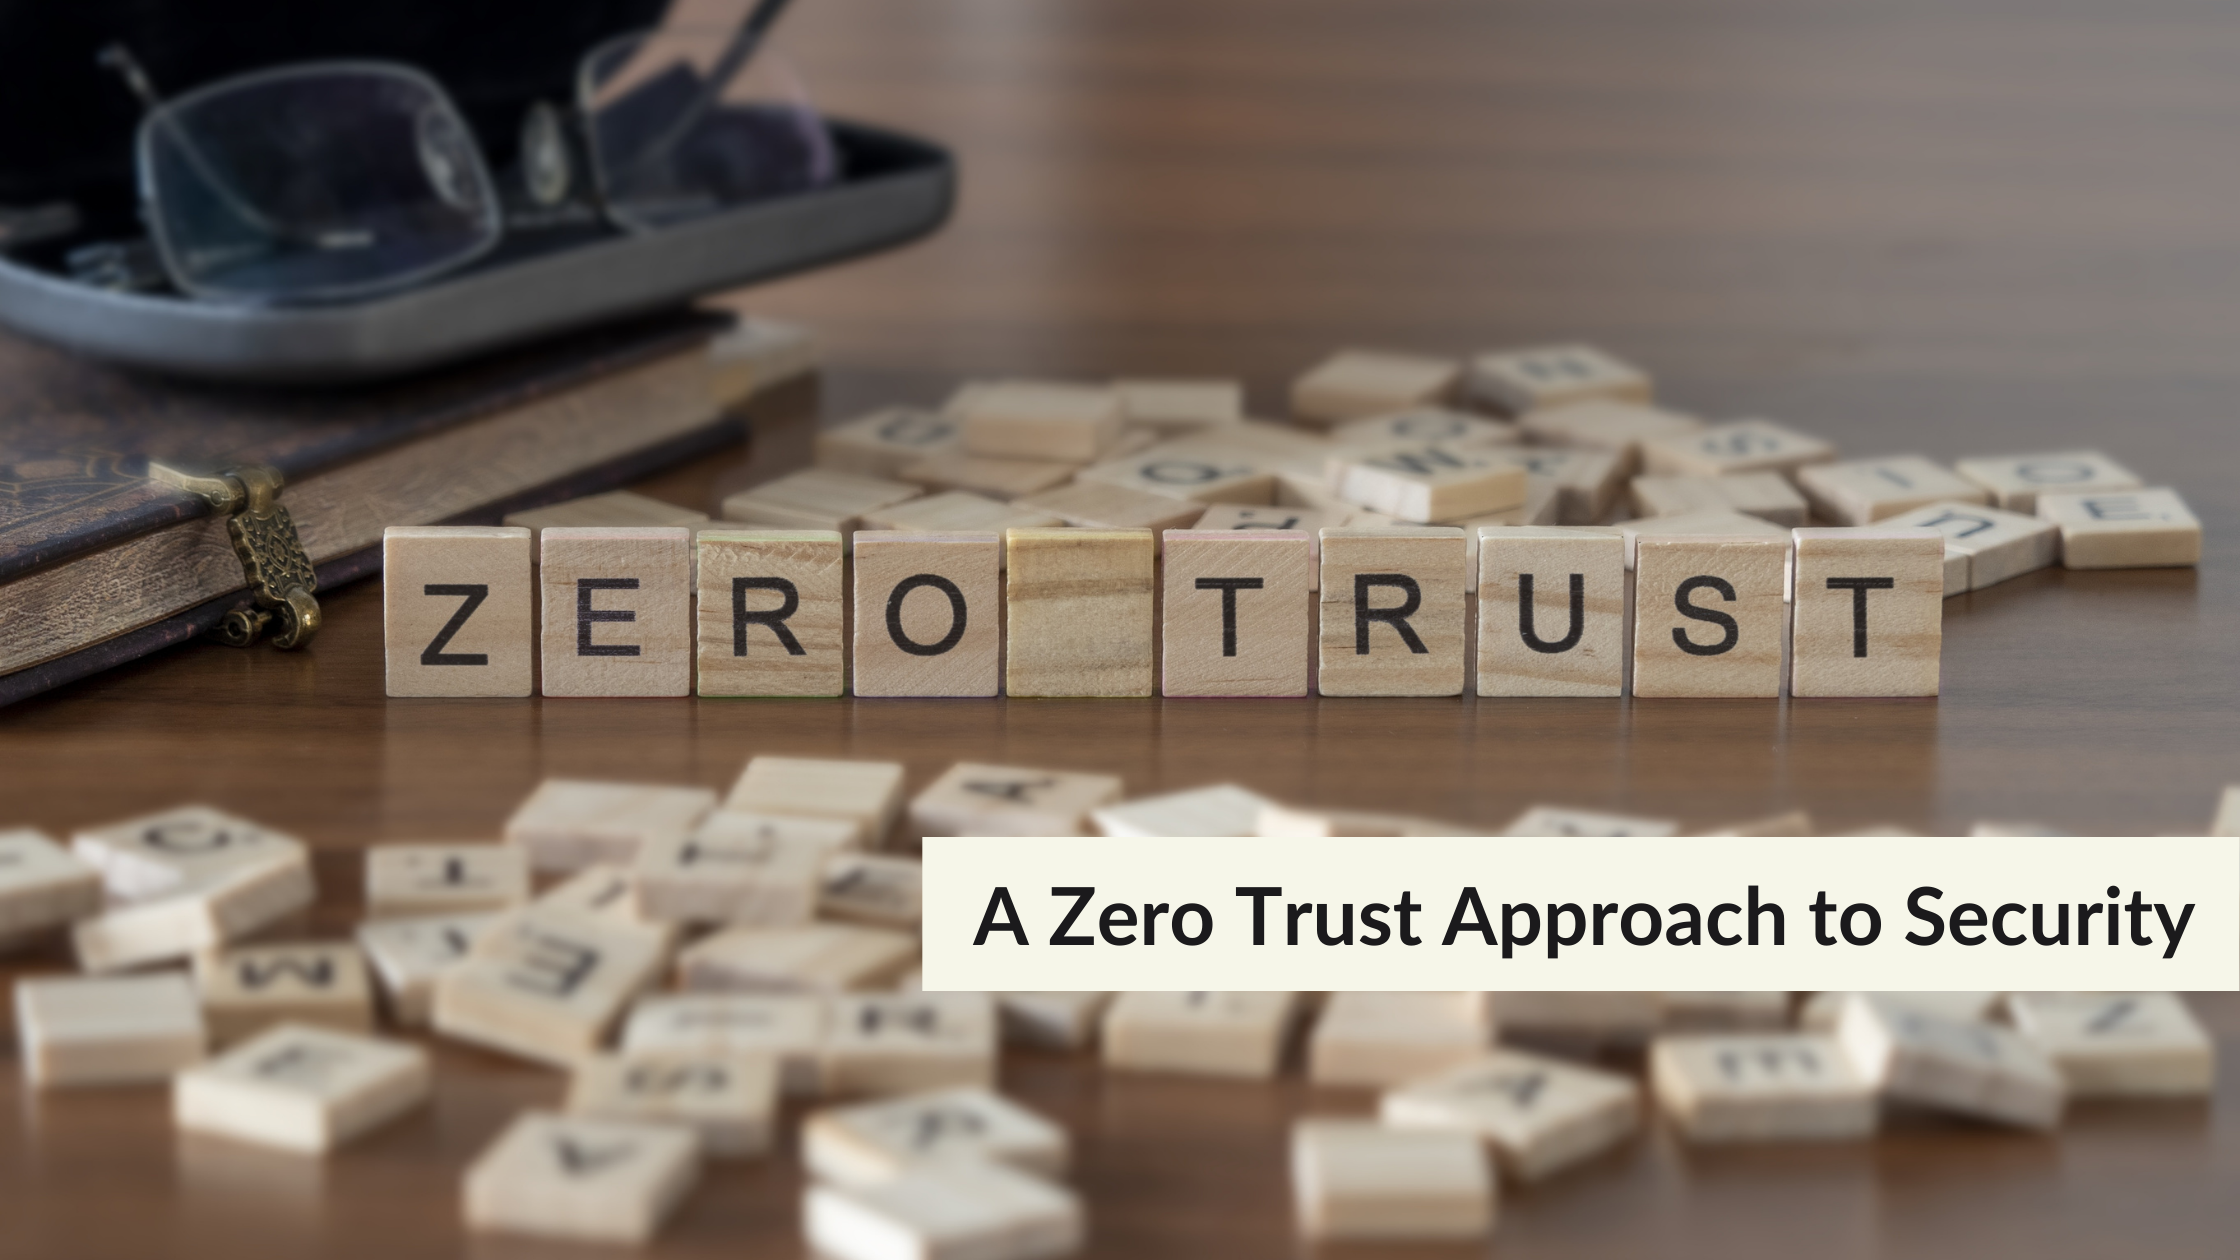 A Zero Trust Approach to Security